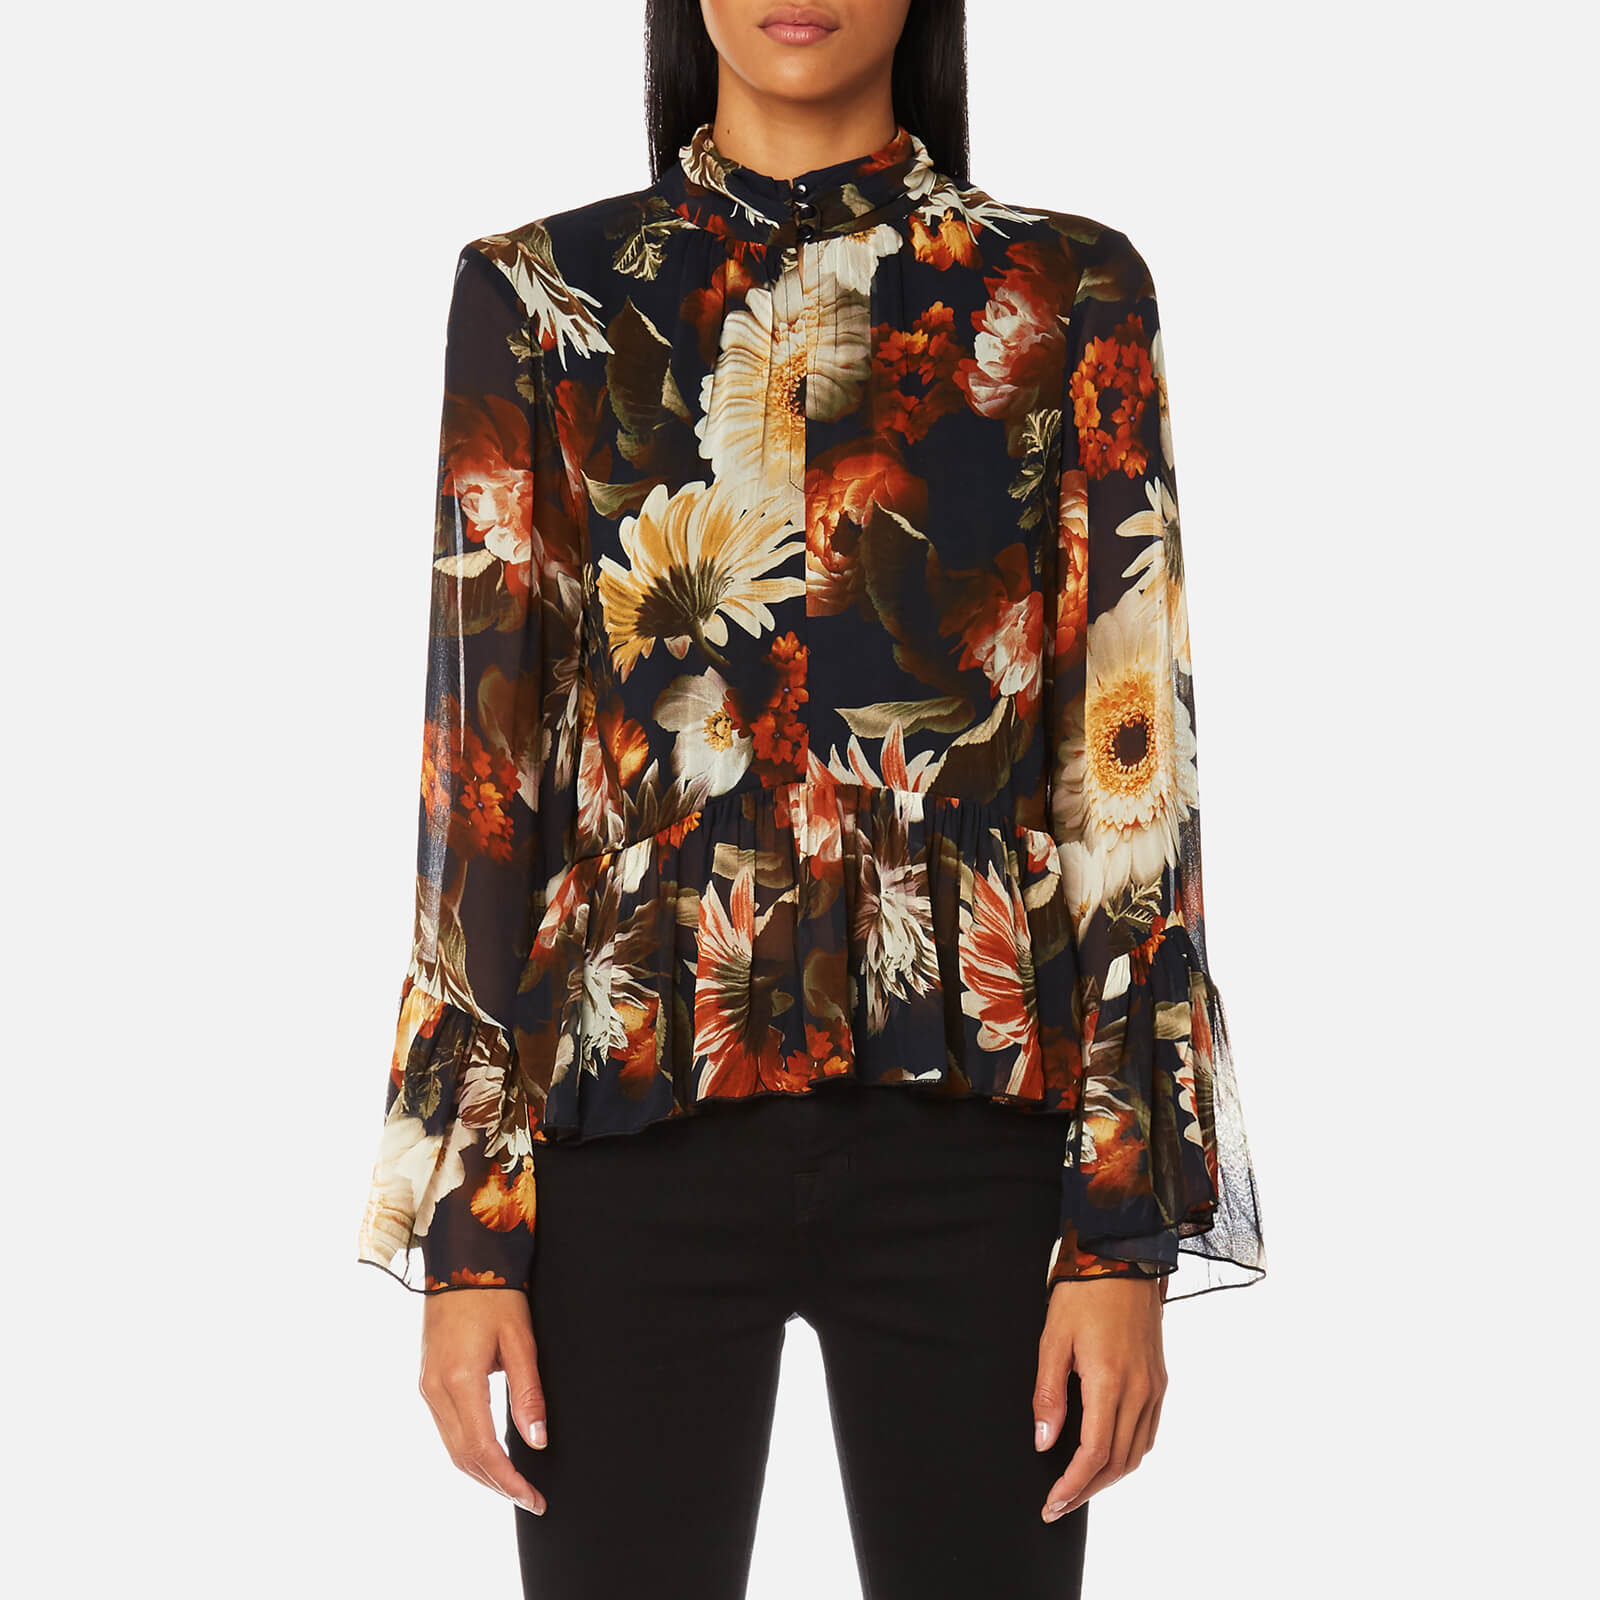 e7a0c125cb82 Gestuz Women's Fergie Flower Print High Neck Blouse - Multi - Free UK  Delivery over £50